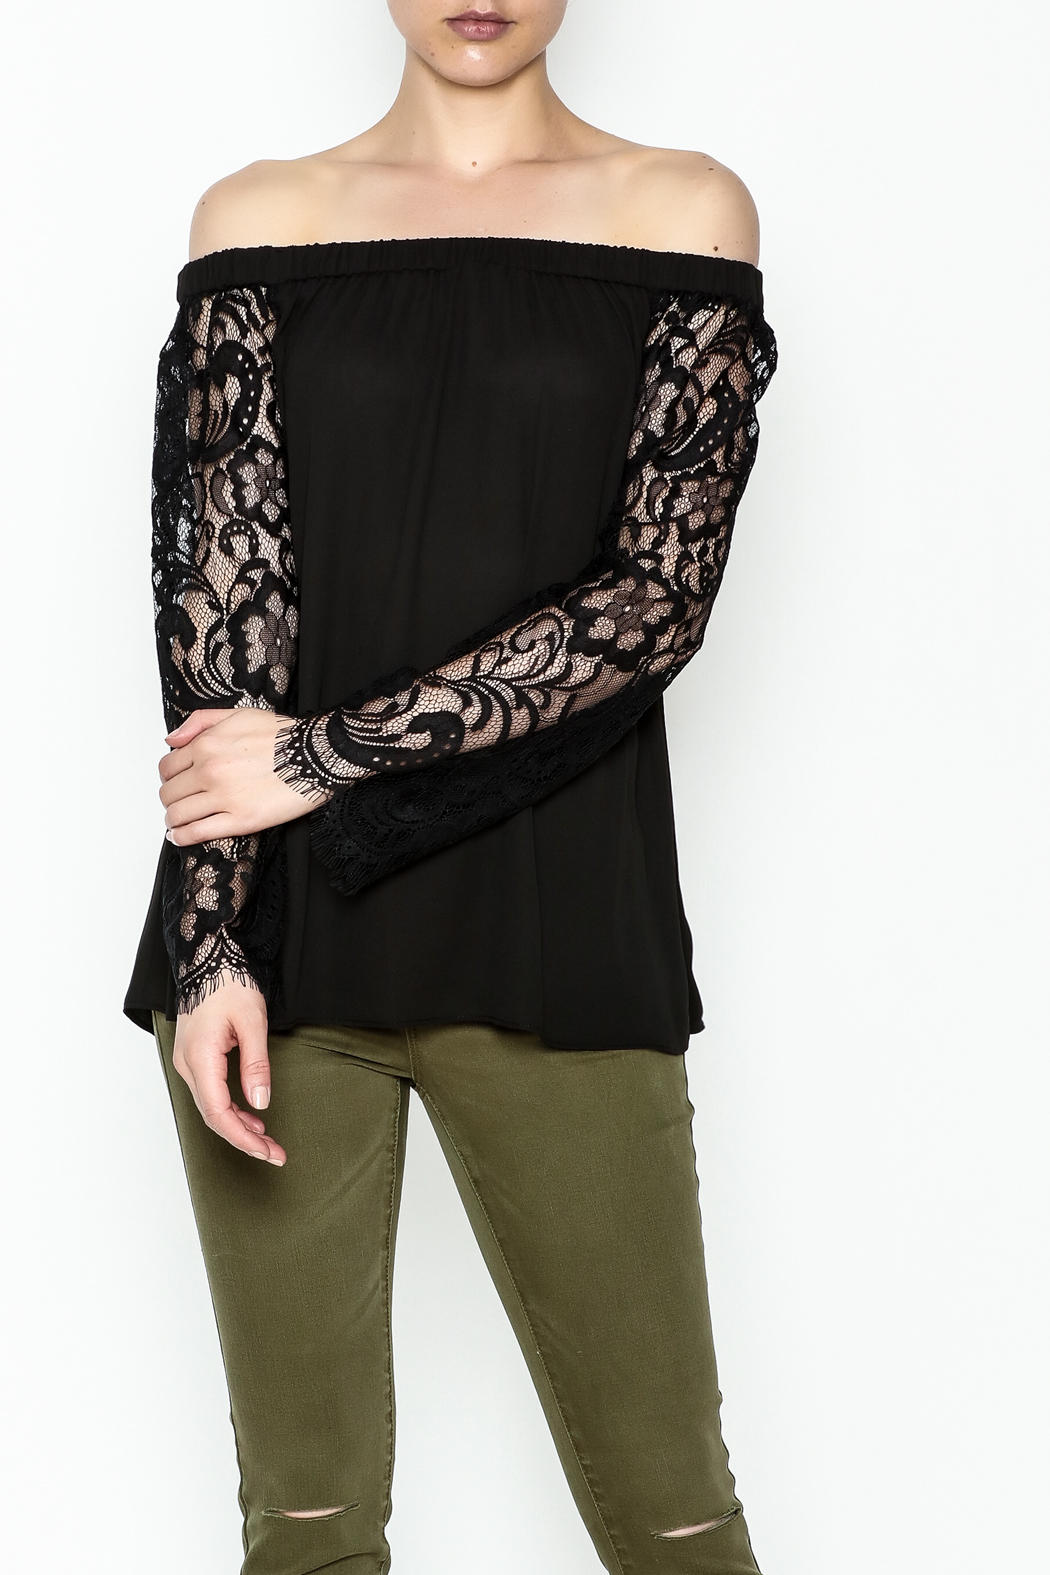 Dora Landa Lesley Off Shoulder Top - Front Cropped Image